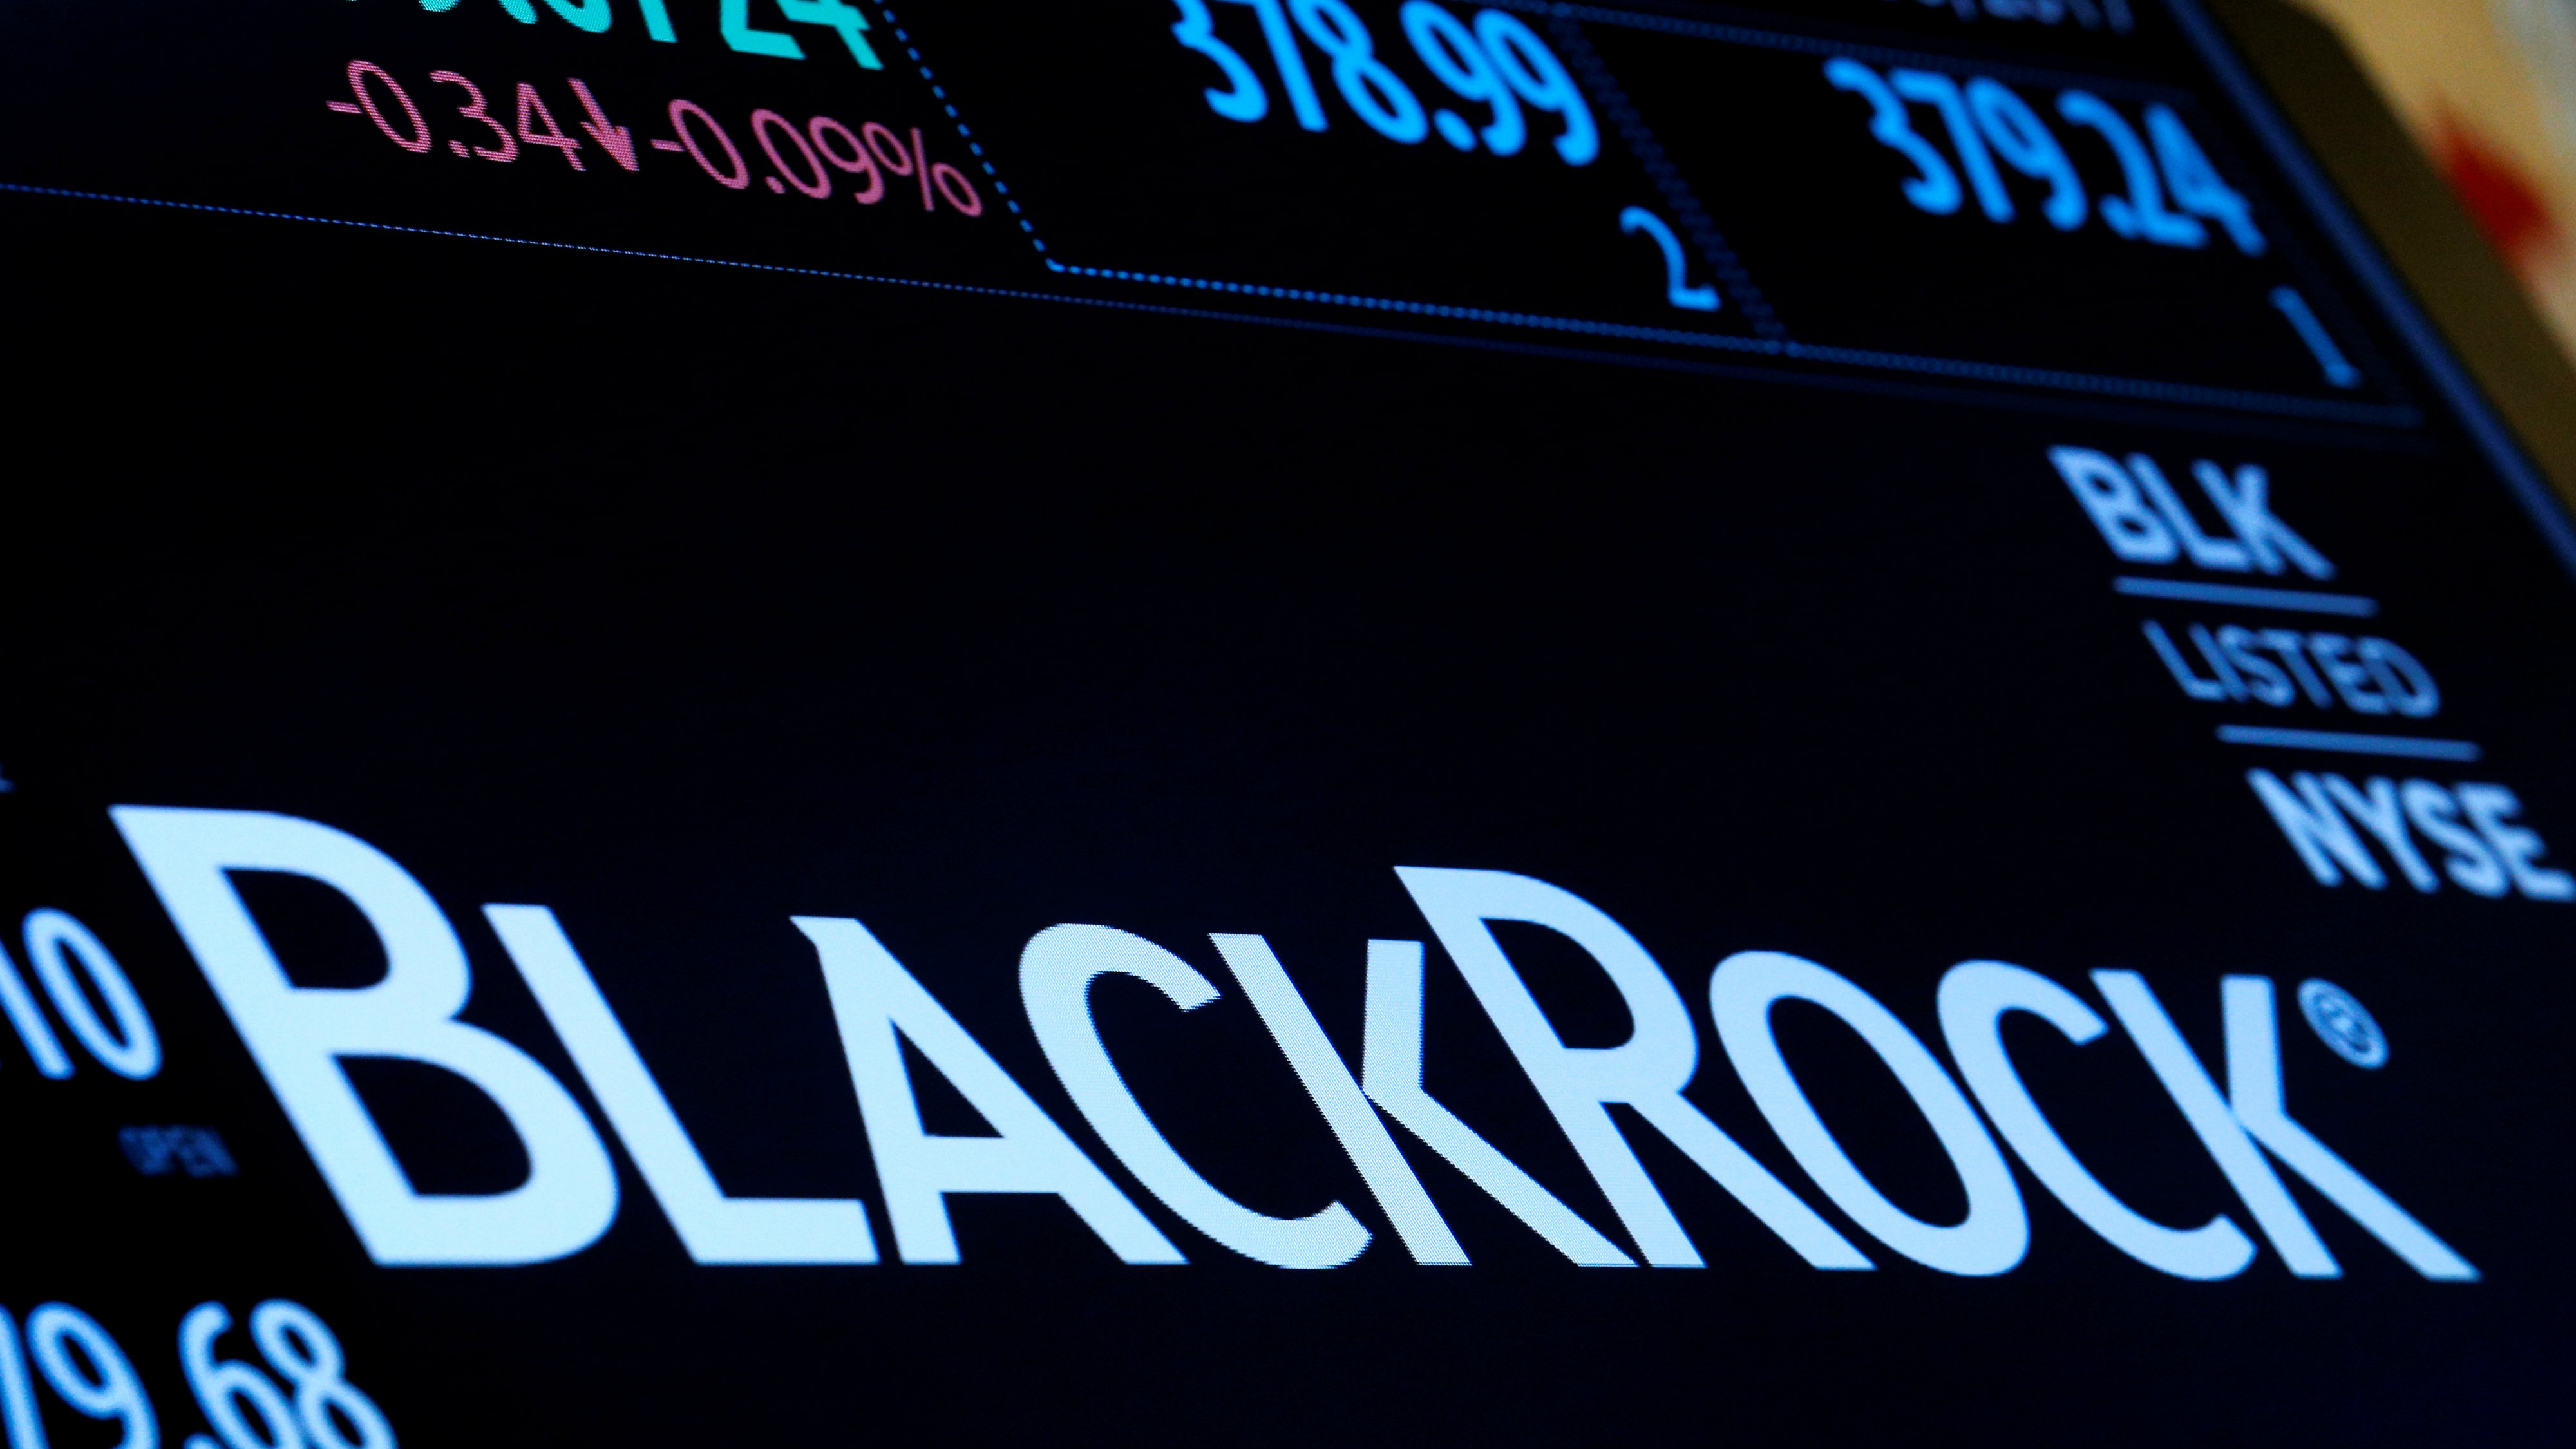 The company logo and trading information for BlackRock is displayed on a screen on the floor of the New York Stock Exchange (NYSE) in New York, U.S., March 30, 2017.